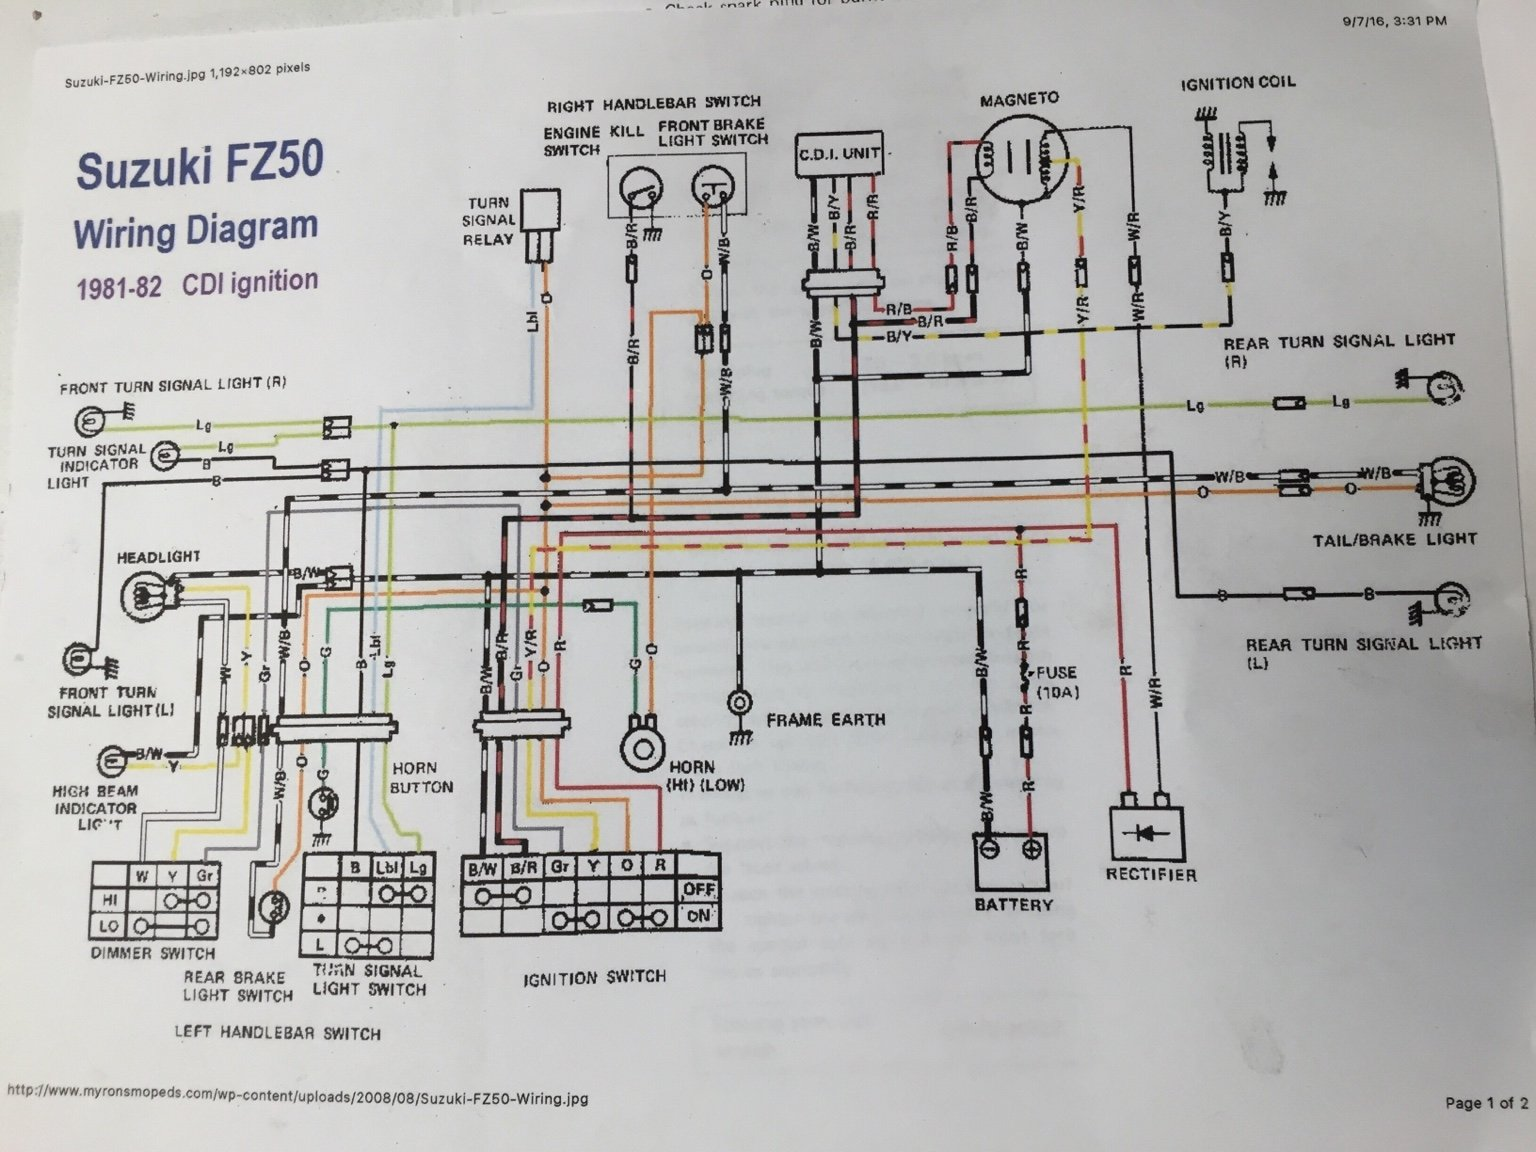 Suzuki Gs550 Wiring Diagram from uploads.tapatalk-cdn.com